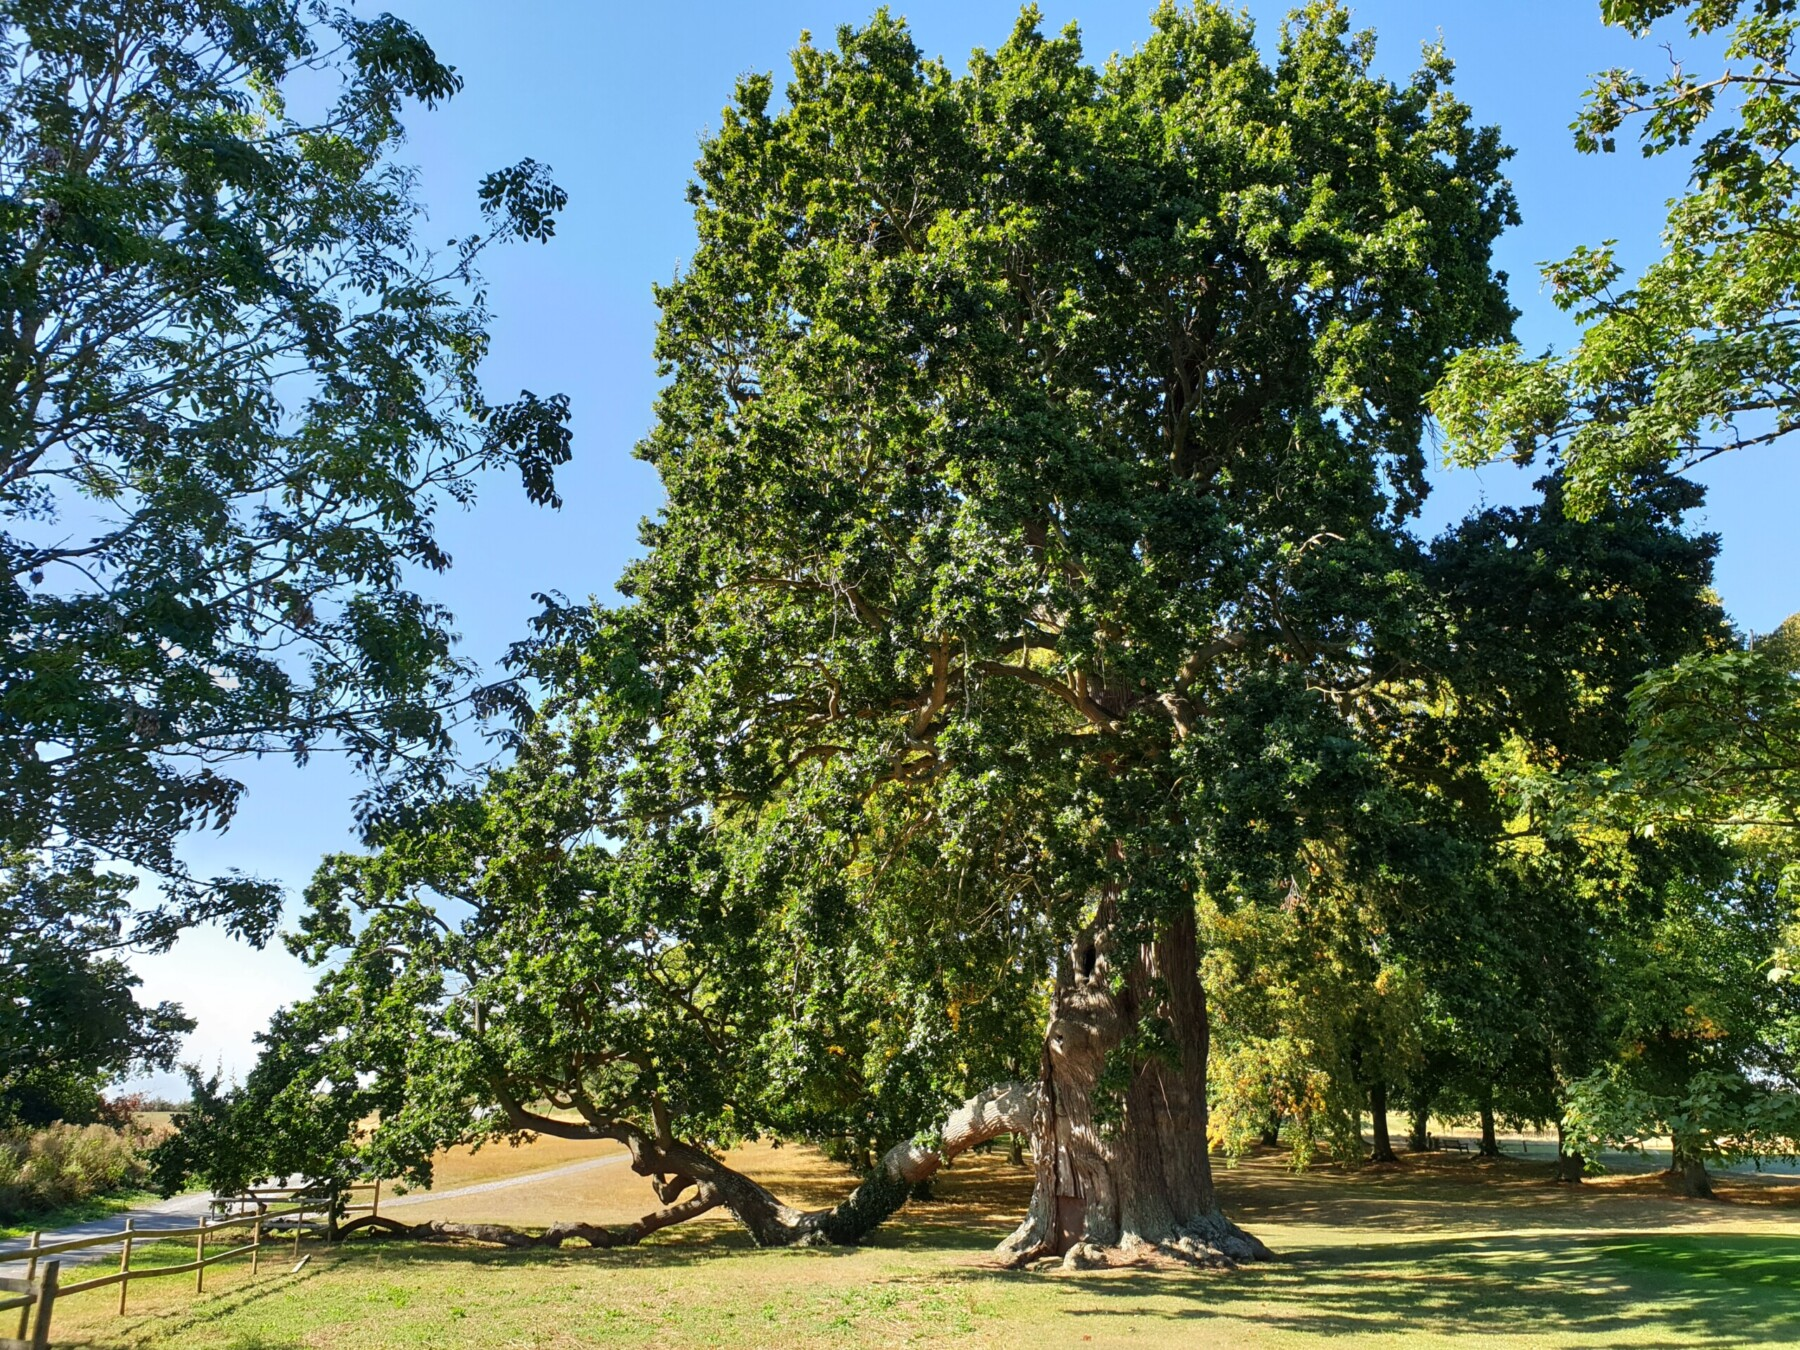 Pedigree Oak Trees of Provenance: 'Oaklings' with Special Lineages, with Benedict Pollard